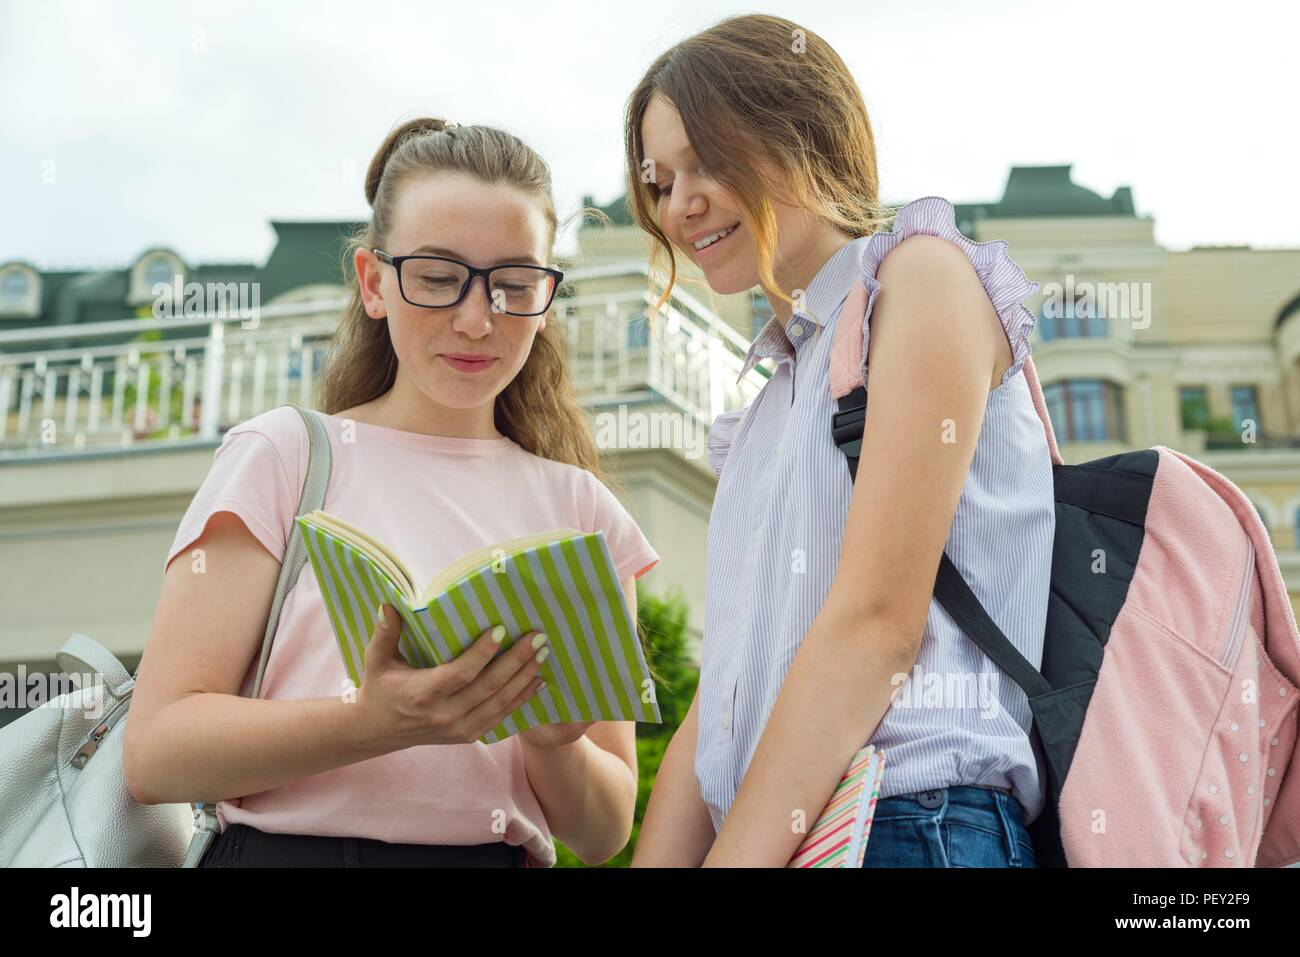 Portrait of two schoolgirls of teenagers with school backpacks and books. - Stock Image